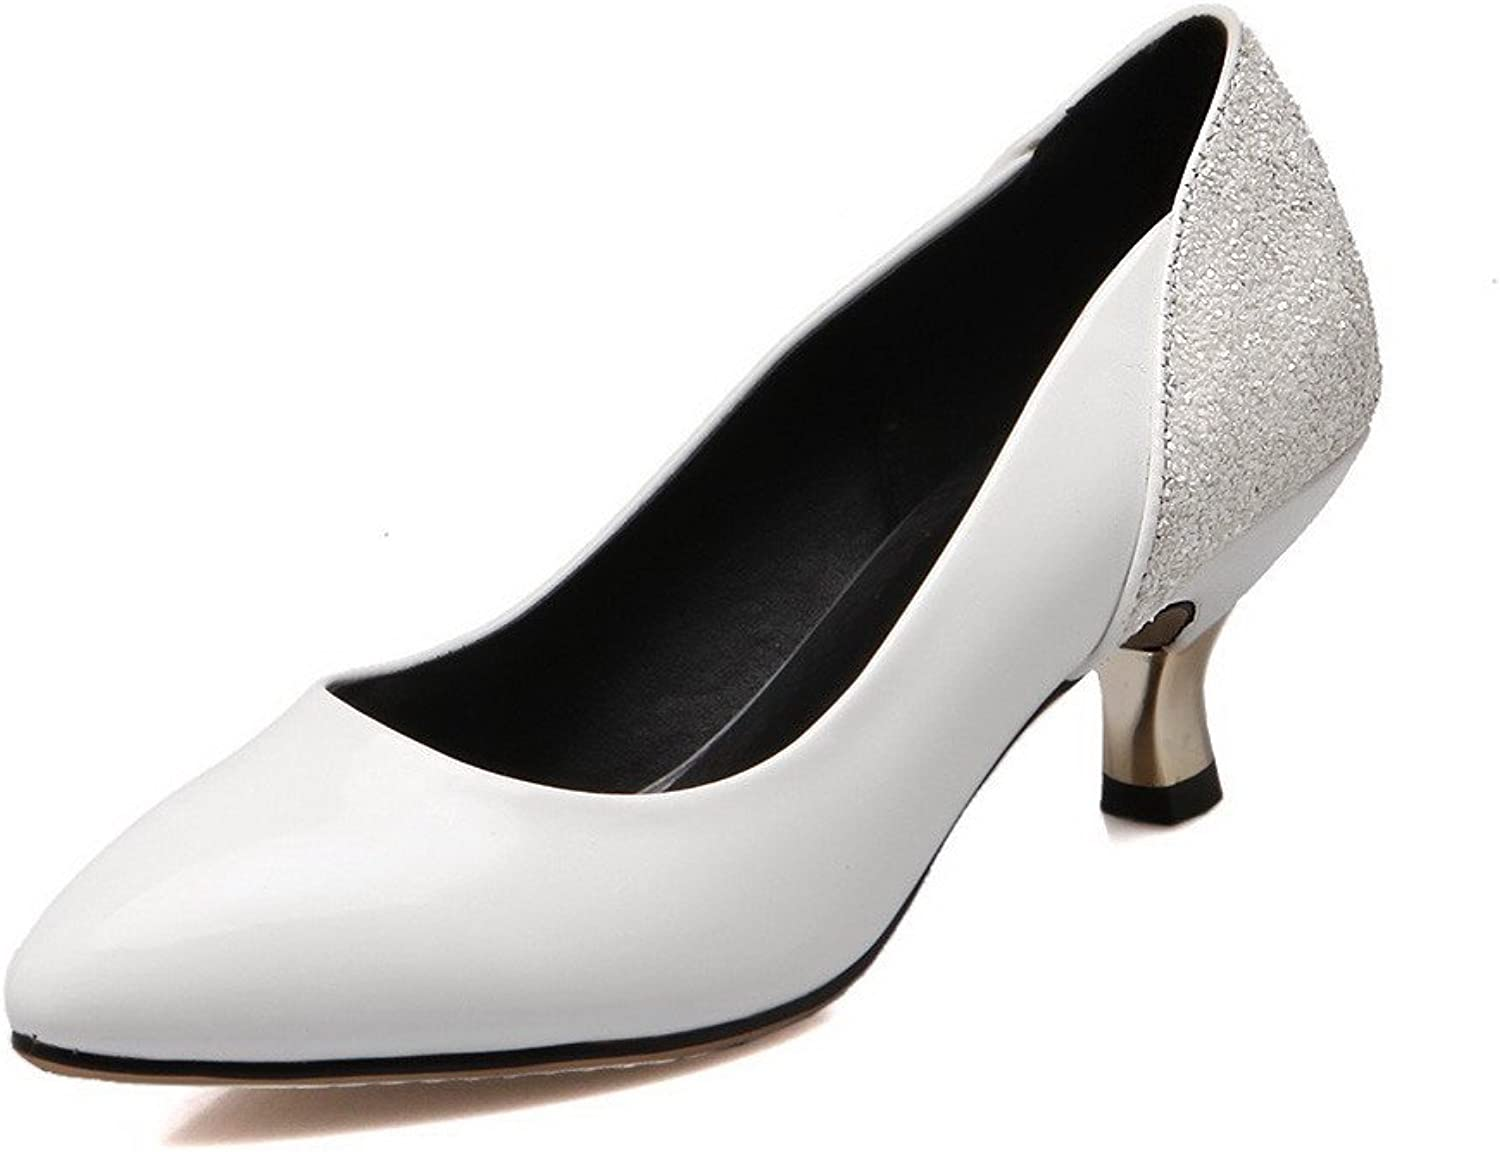 WeenFashion Women's Pointed Closed Toe Kitten Heels Solid Pull On Pumps-shoes